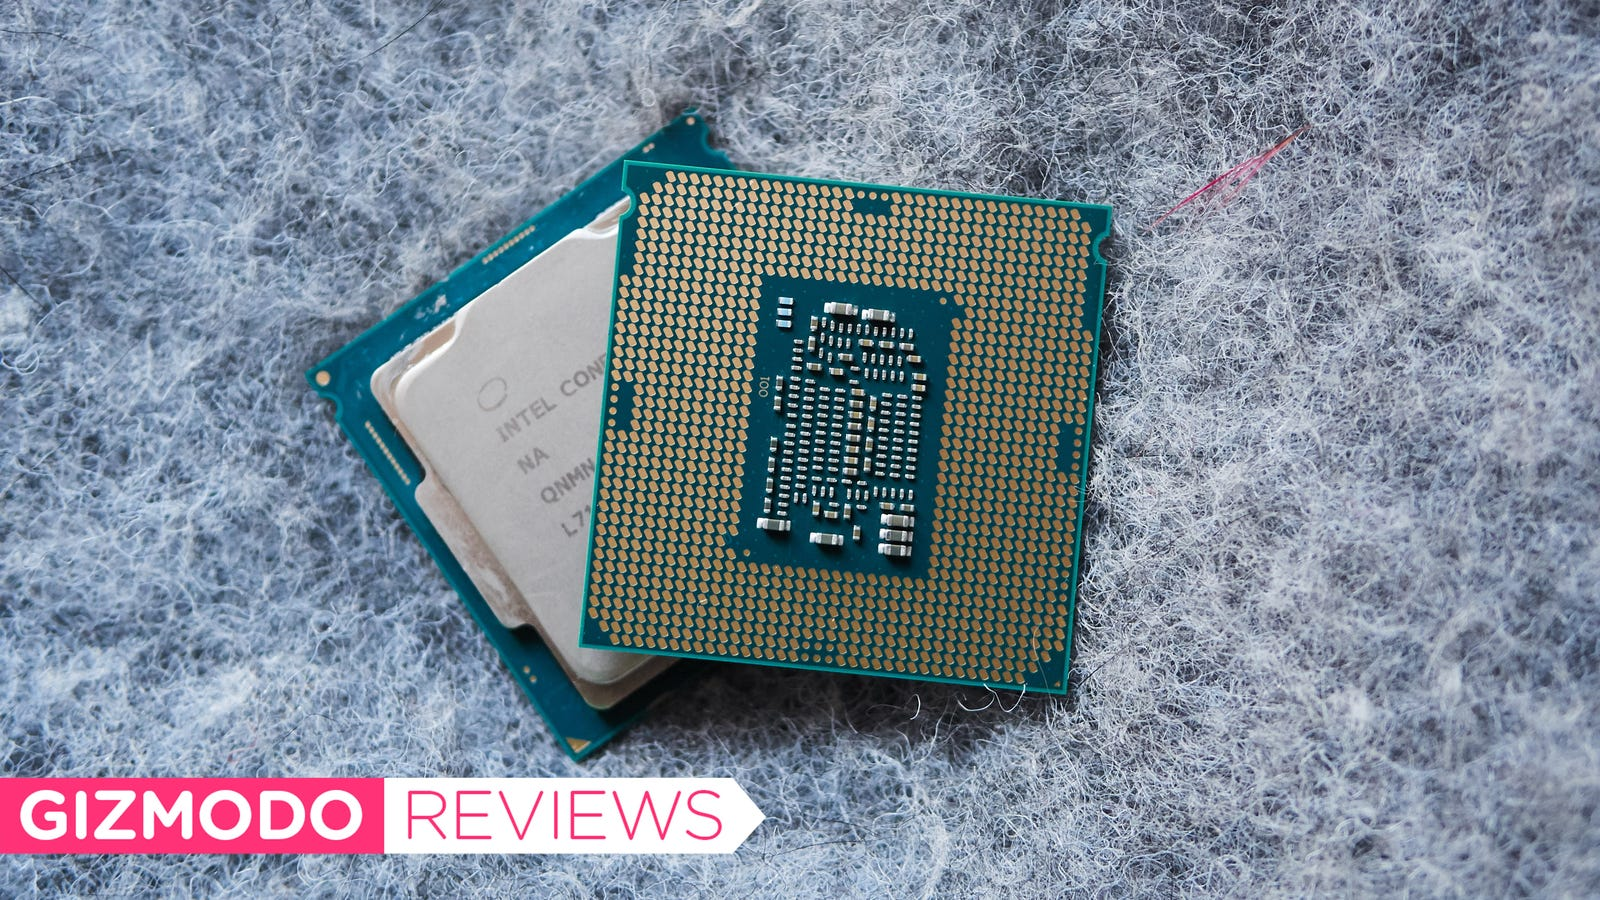 Intels Latest Coffee Lake Processors Are Fast As Hell Circuit Reviews Online Shopping On Dual Integrated